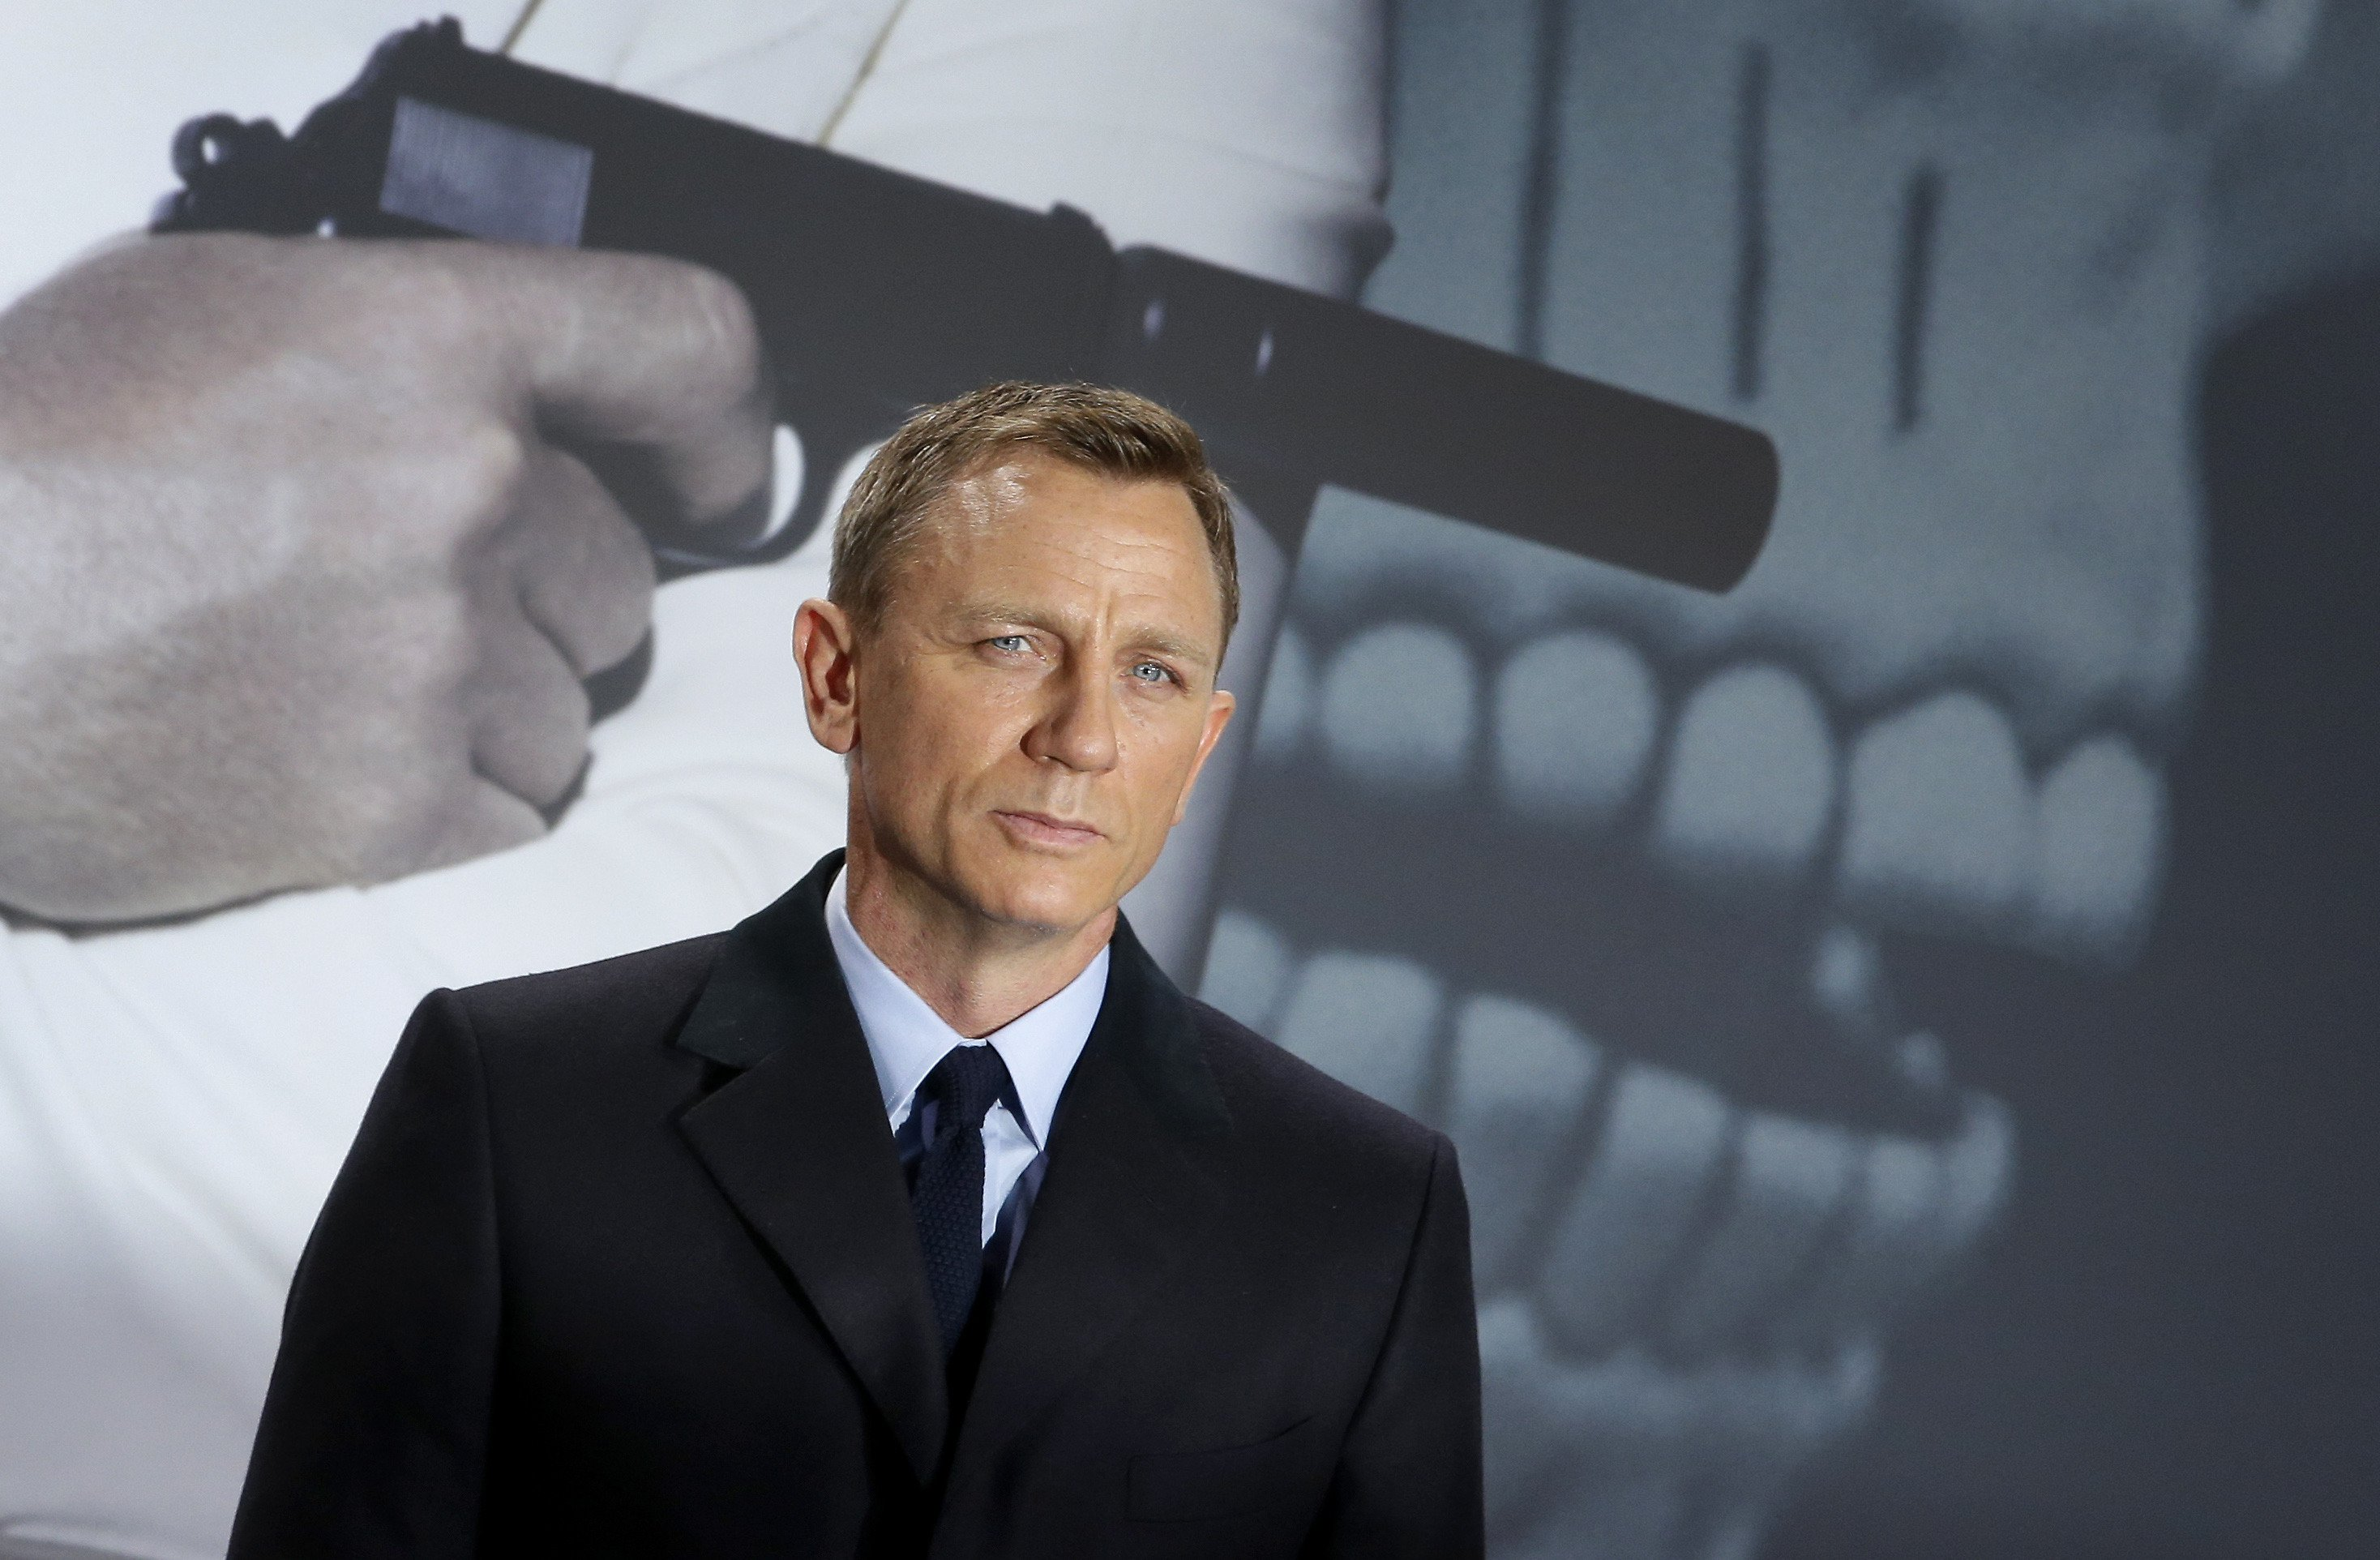 craig1 1 1 Announcement Of Next James Bond Could Be Very Close